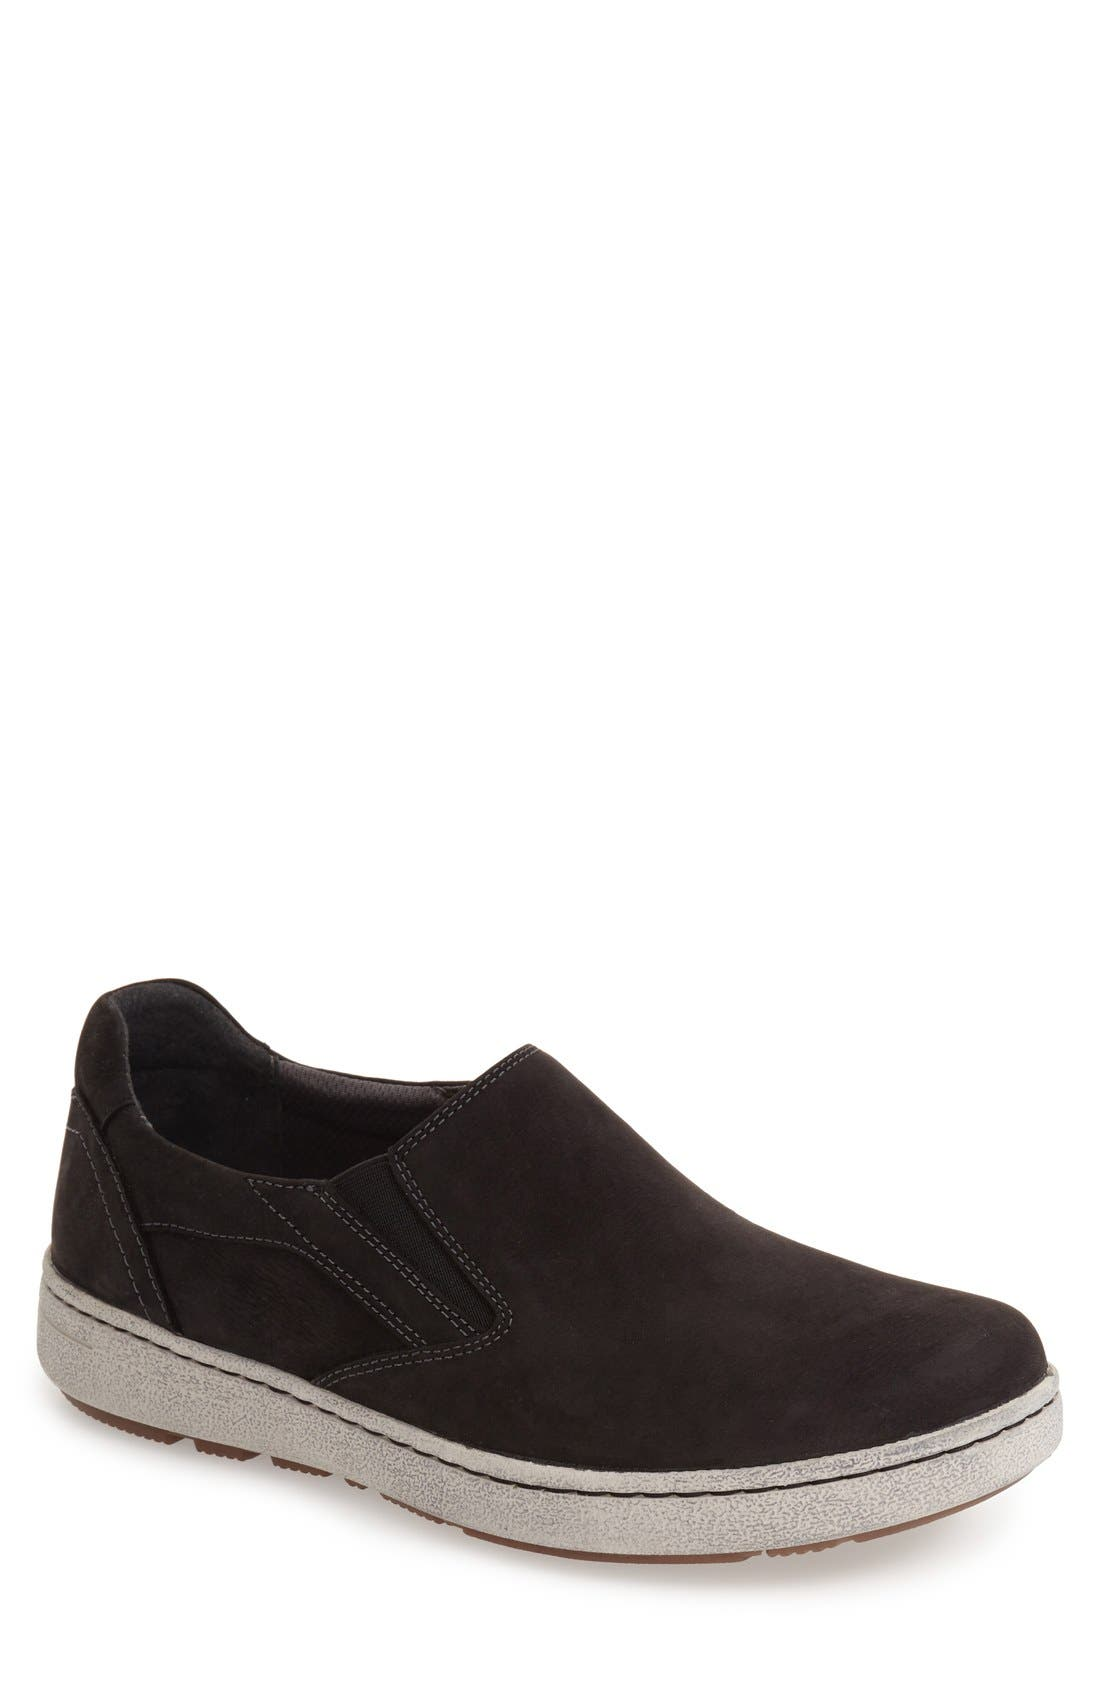 'Viktor' Water Resistant Slip-On Sneaker,                         Main,                         color, BLACK MILLED NUBUCK LEATHER